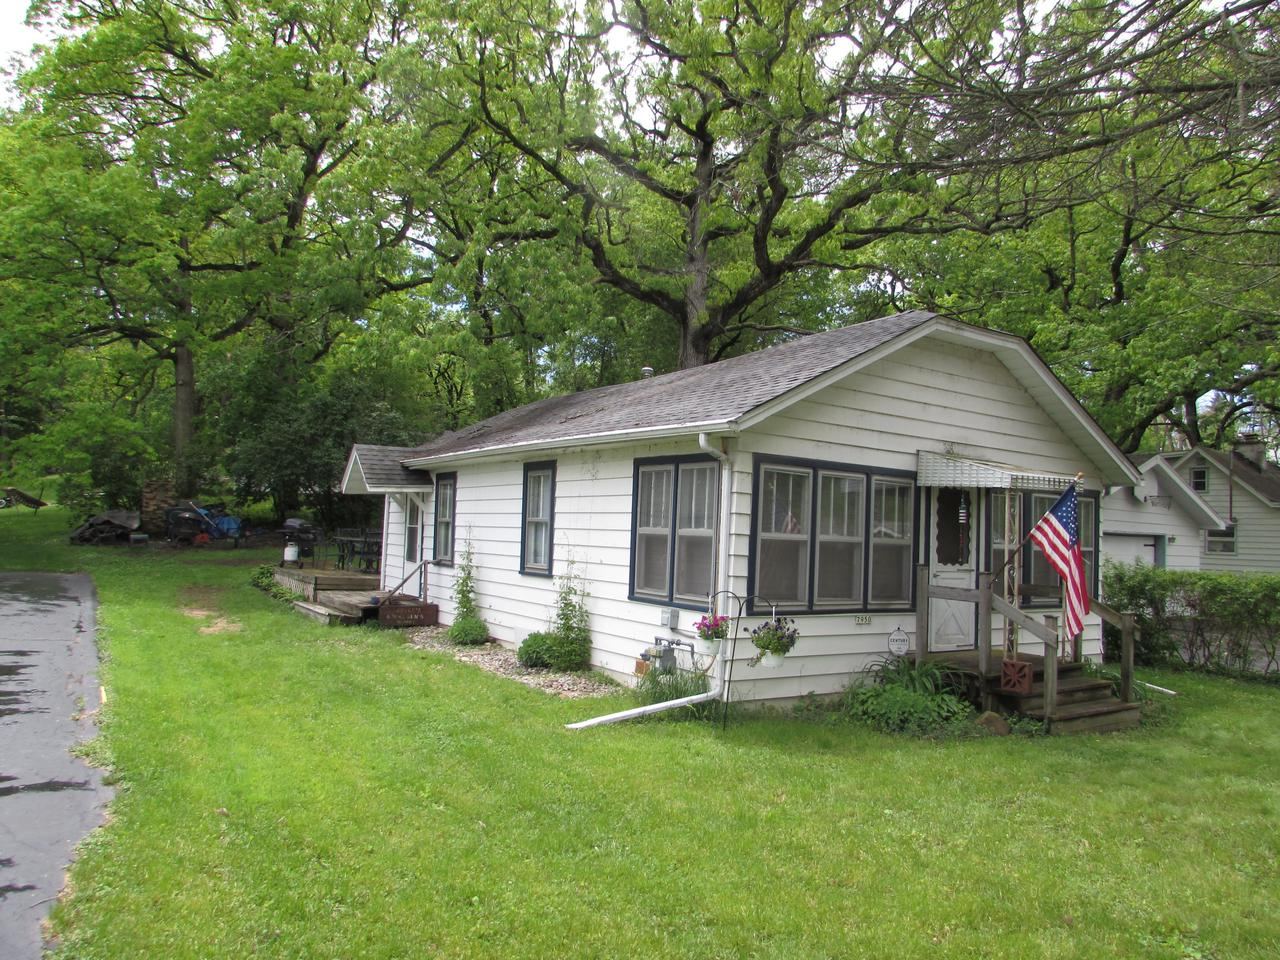 Quaint 2BR/1BA cottage that is perfect for a weekend retreat, summer vacation or rental. Less than a block away from Bohners Lake, this ranch home has lake access rights, boat slip and beach rights - all the attributes of lake living without the high price tag! Conveniently located to enjoy the area attractions. Updates include a newer roof and furnace.